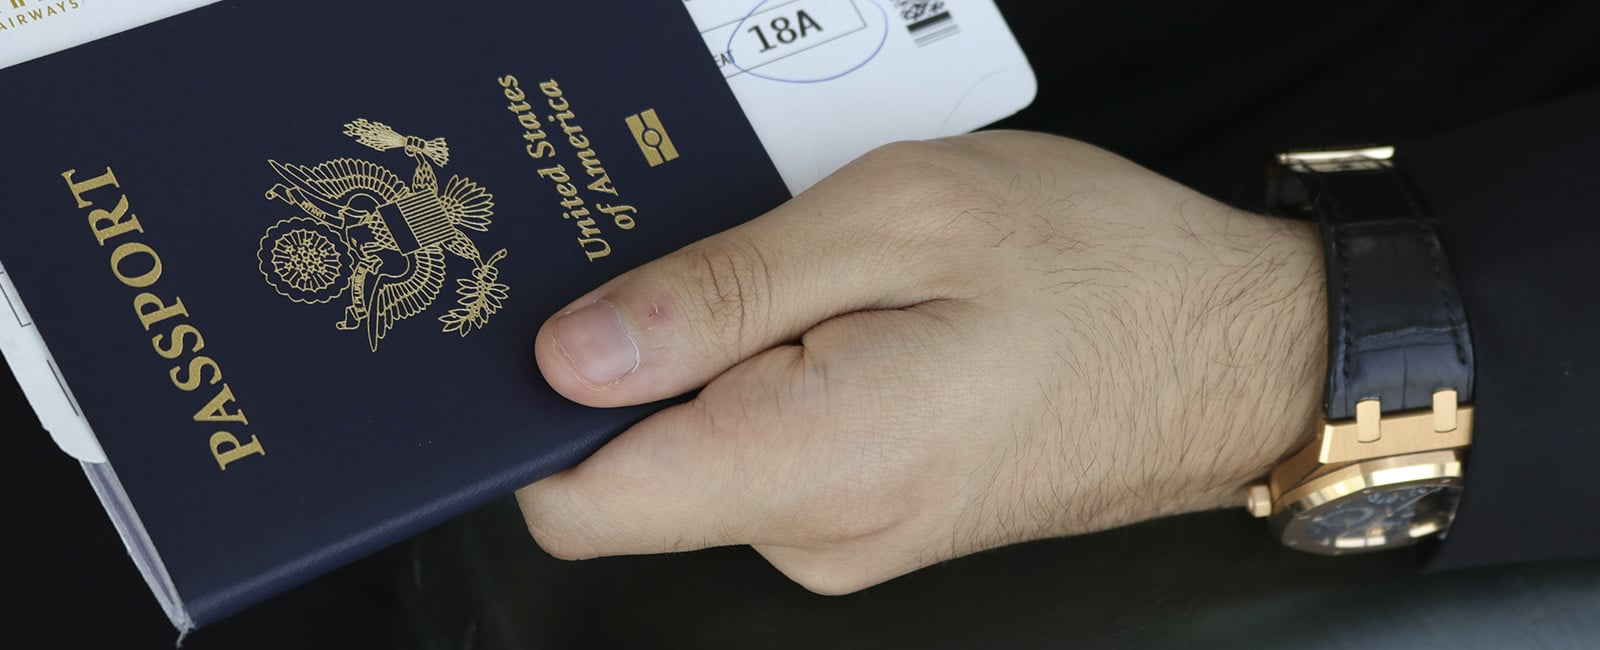 Never trust on those individuals or companies which guarantee you a passport in less time than established by the Government issuing the passport